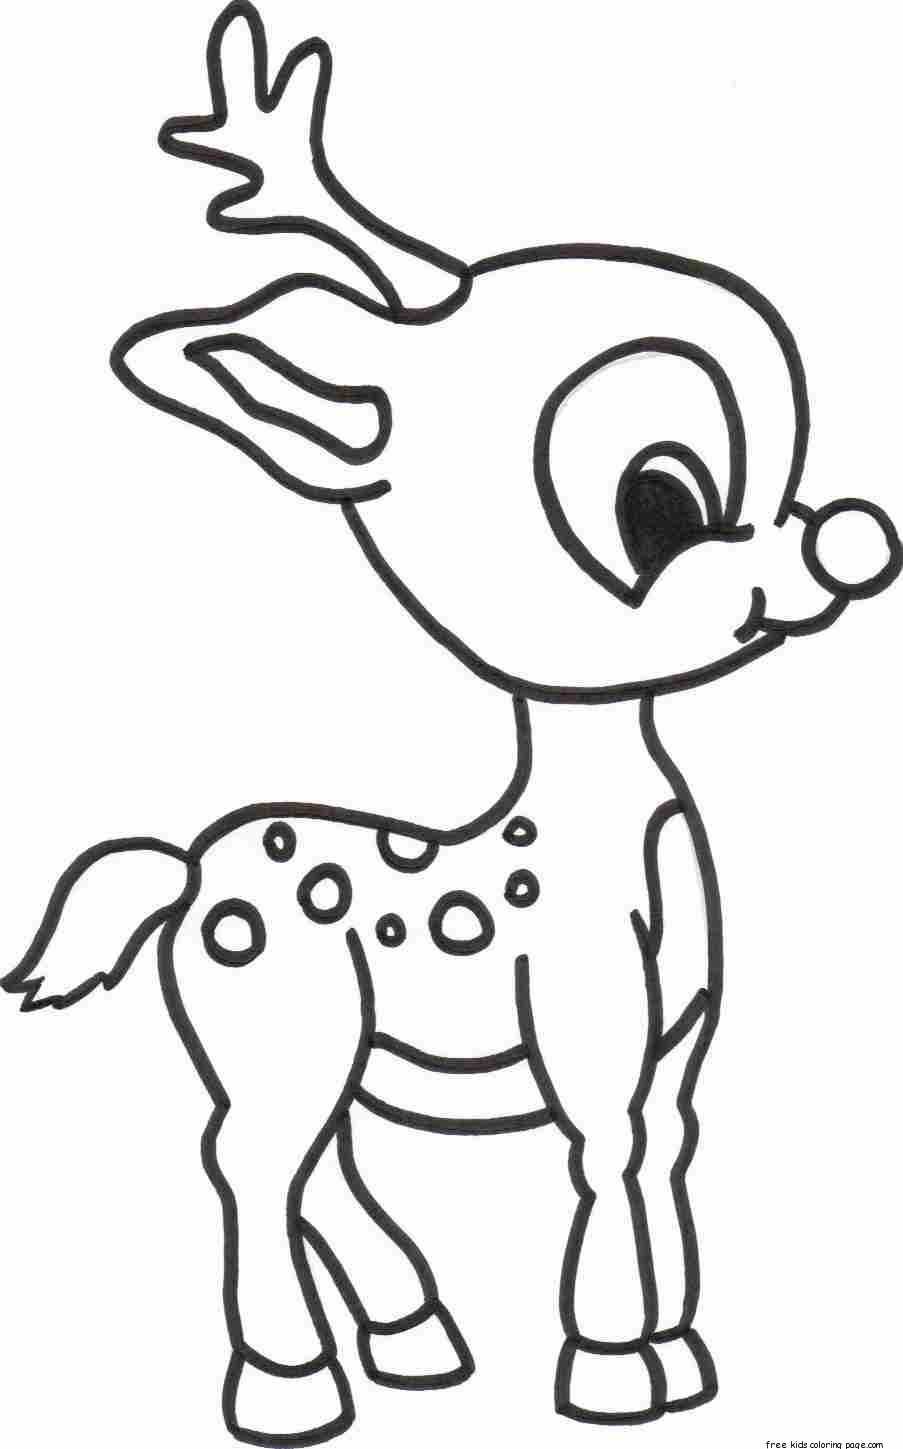 coloring pages for kids to print cartoon coloring pages coloring pages to print to pages coloring print for kids